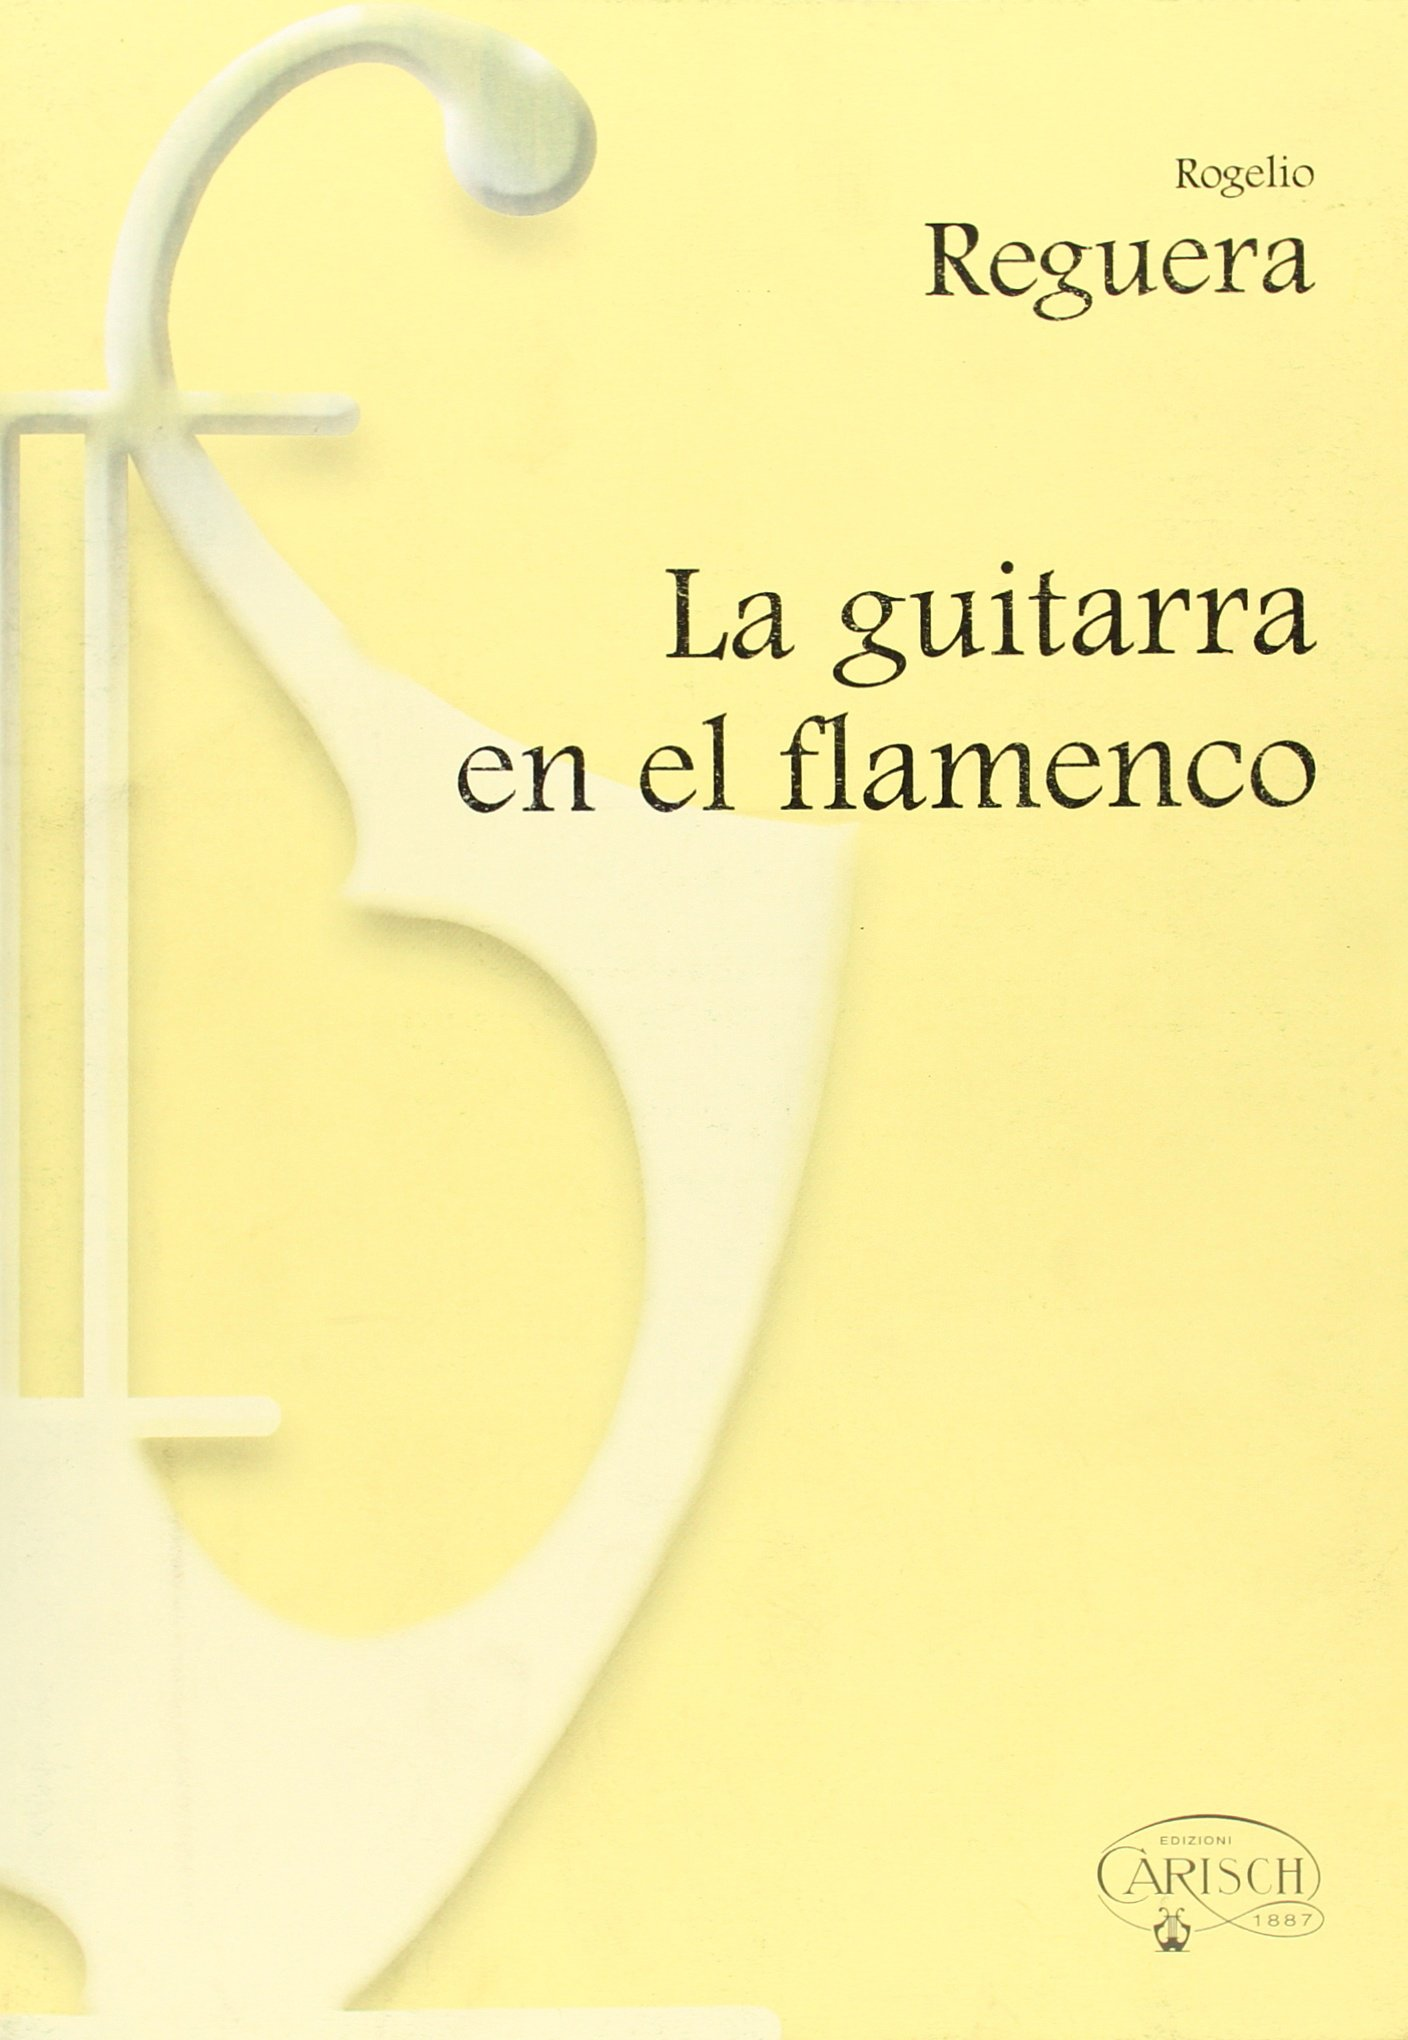 La Guitarra en el Flamenco: Amazon.es: Reguera, Rogelio, Guitar ...